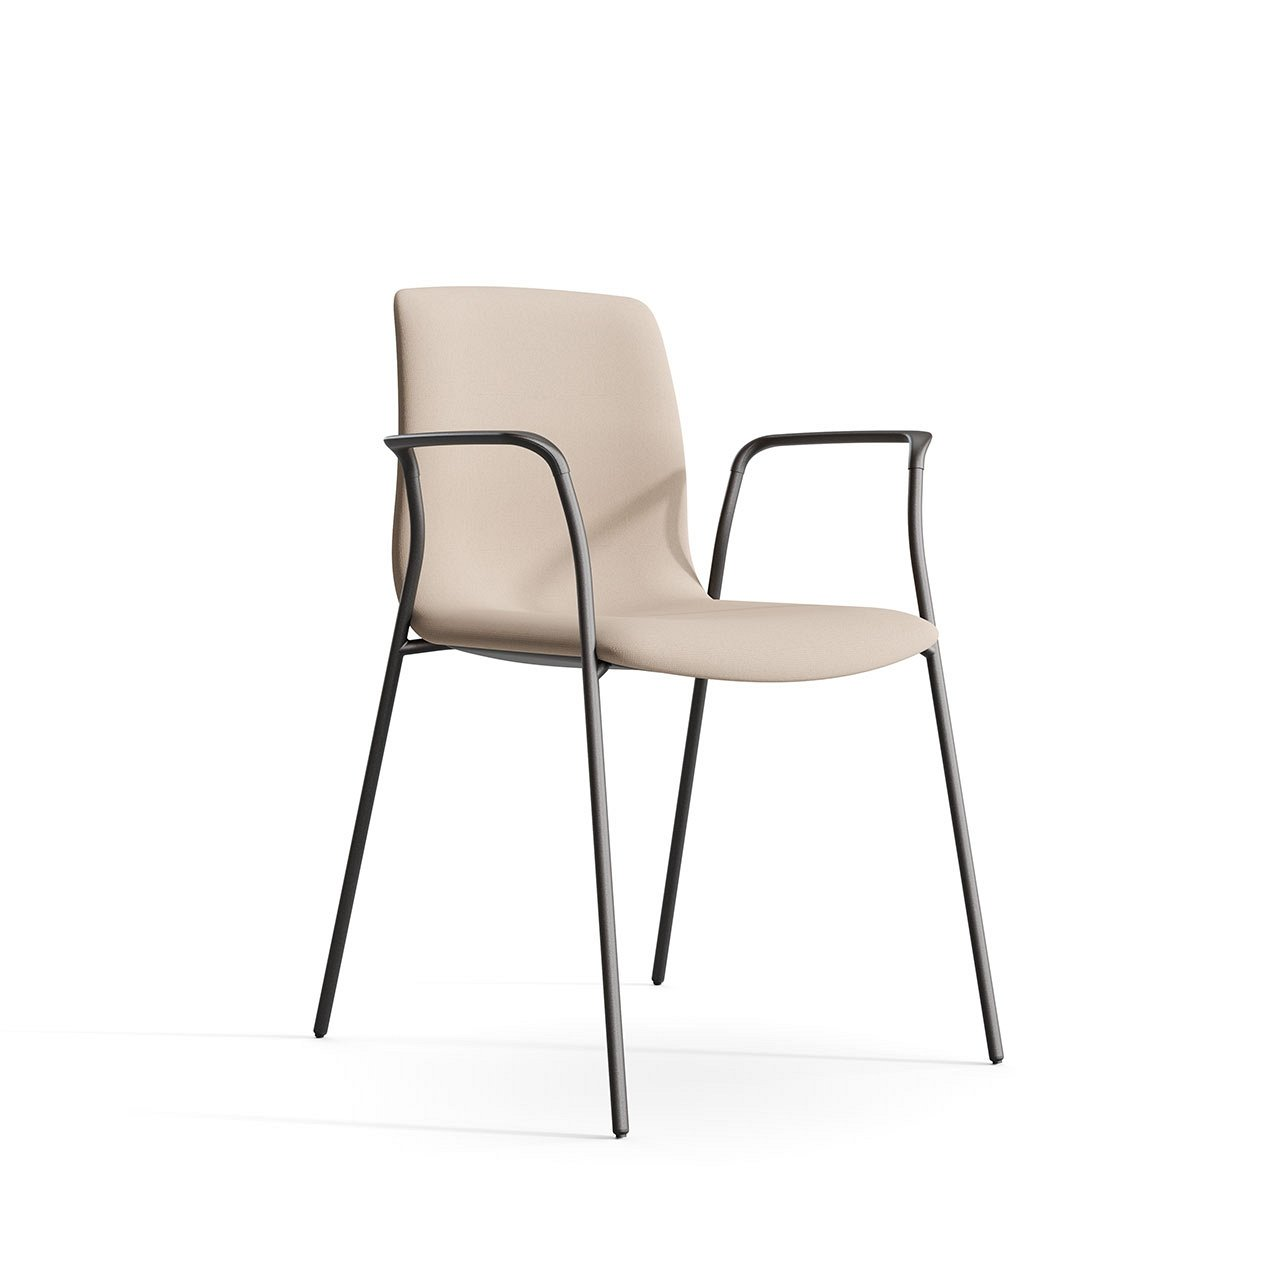 Noom 50 Chair from Actiu